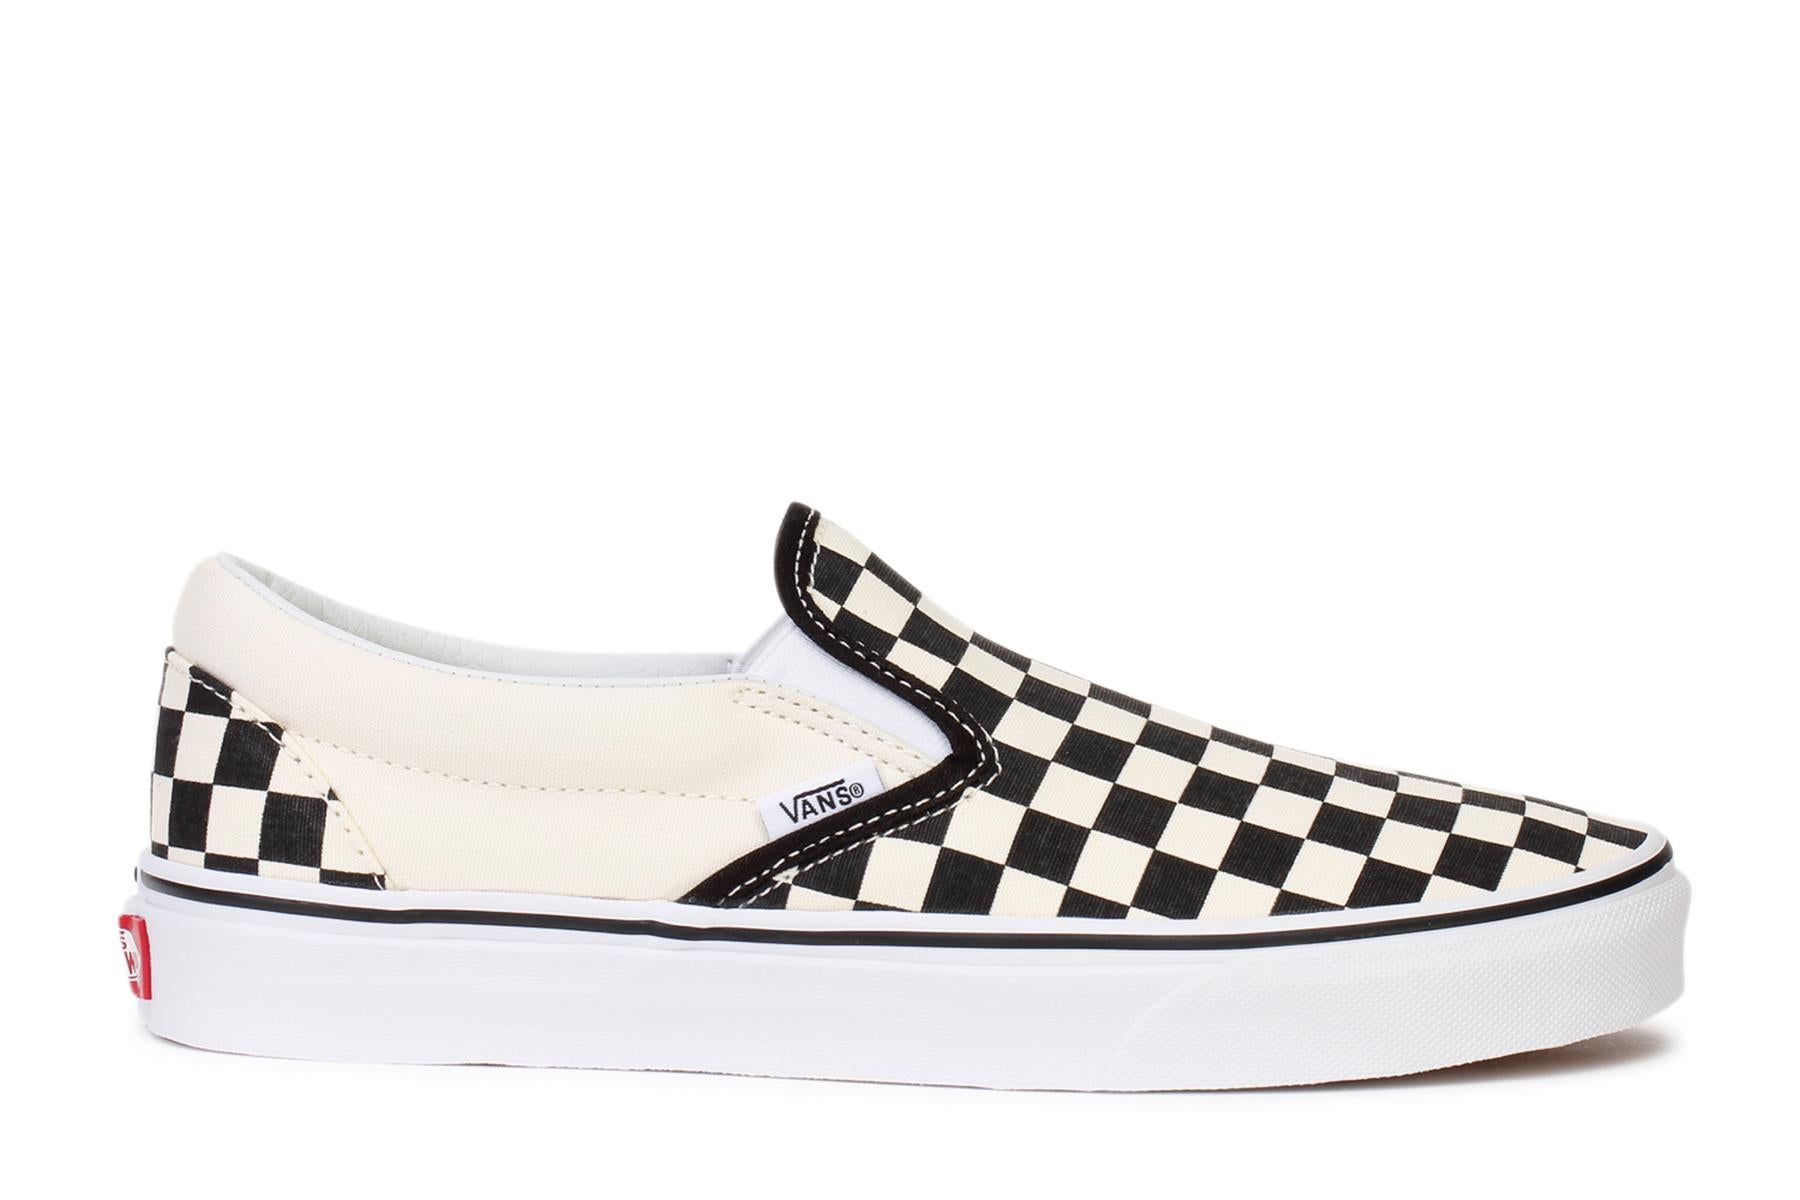 vans-mens-classic-slip-on-sneakers-black-white-checkerboard-white-vn000eyebww-main